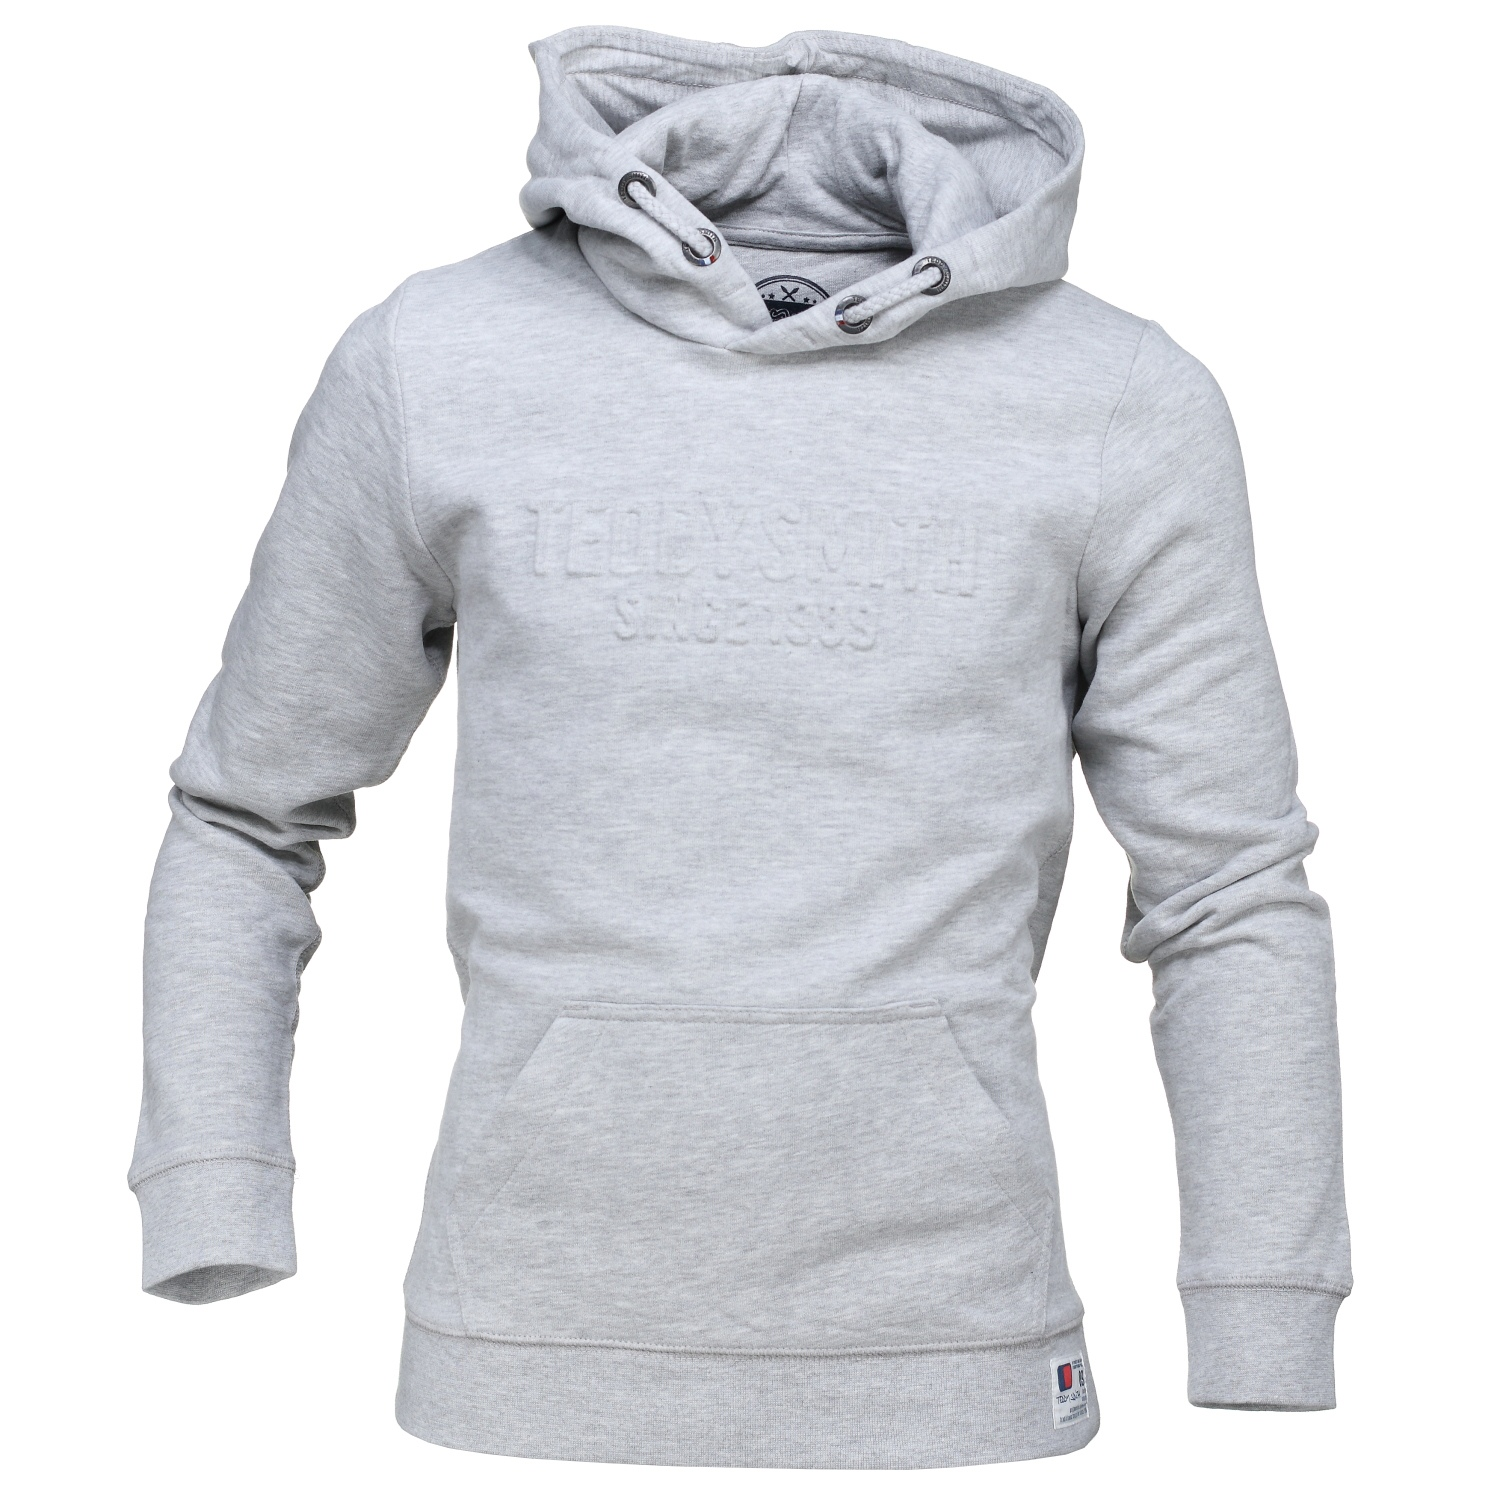 http://www.leadermode.com/141946/teddy-smith-swist-hoody-jr-60805927d-181-gris-chine.jpg